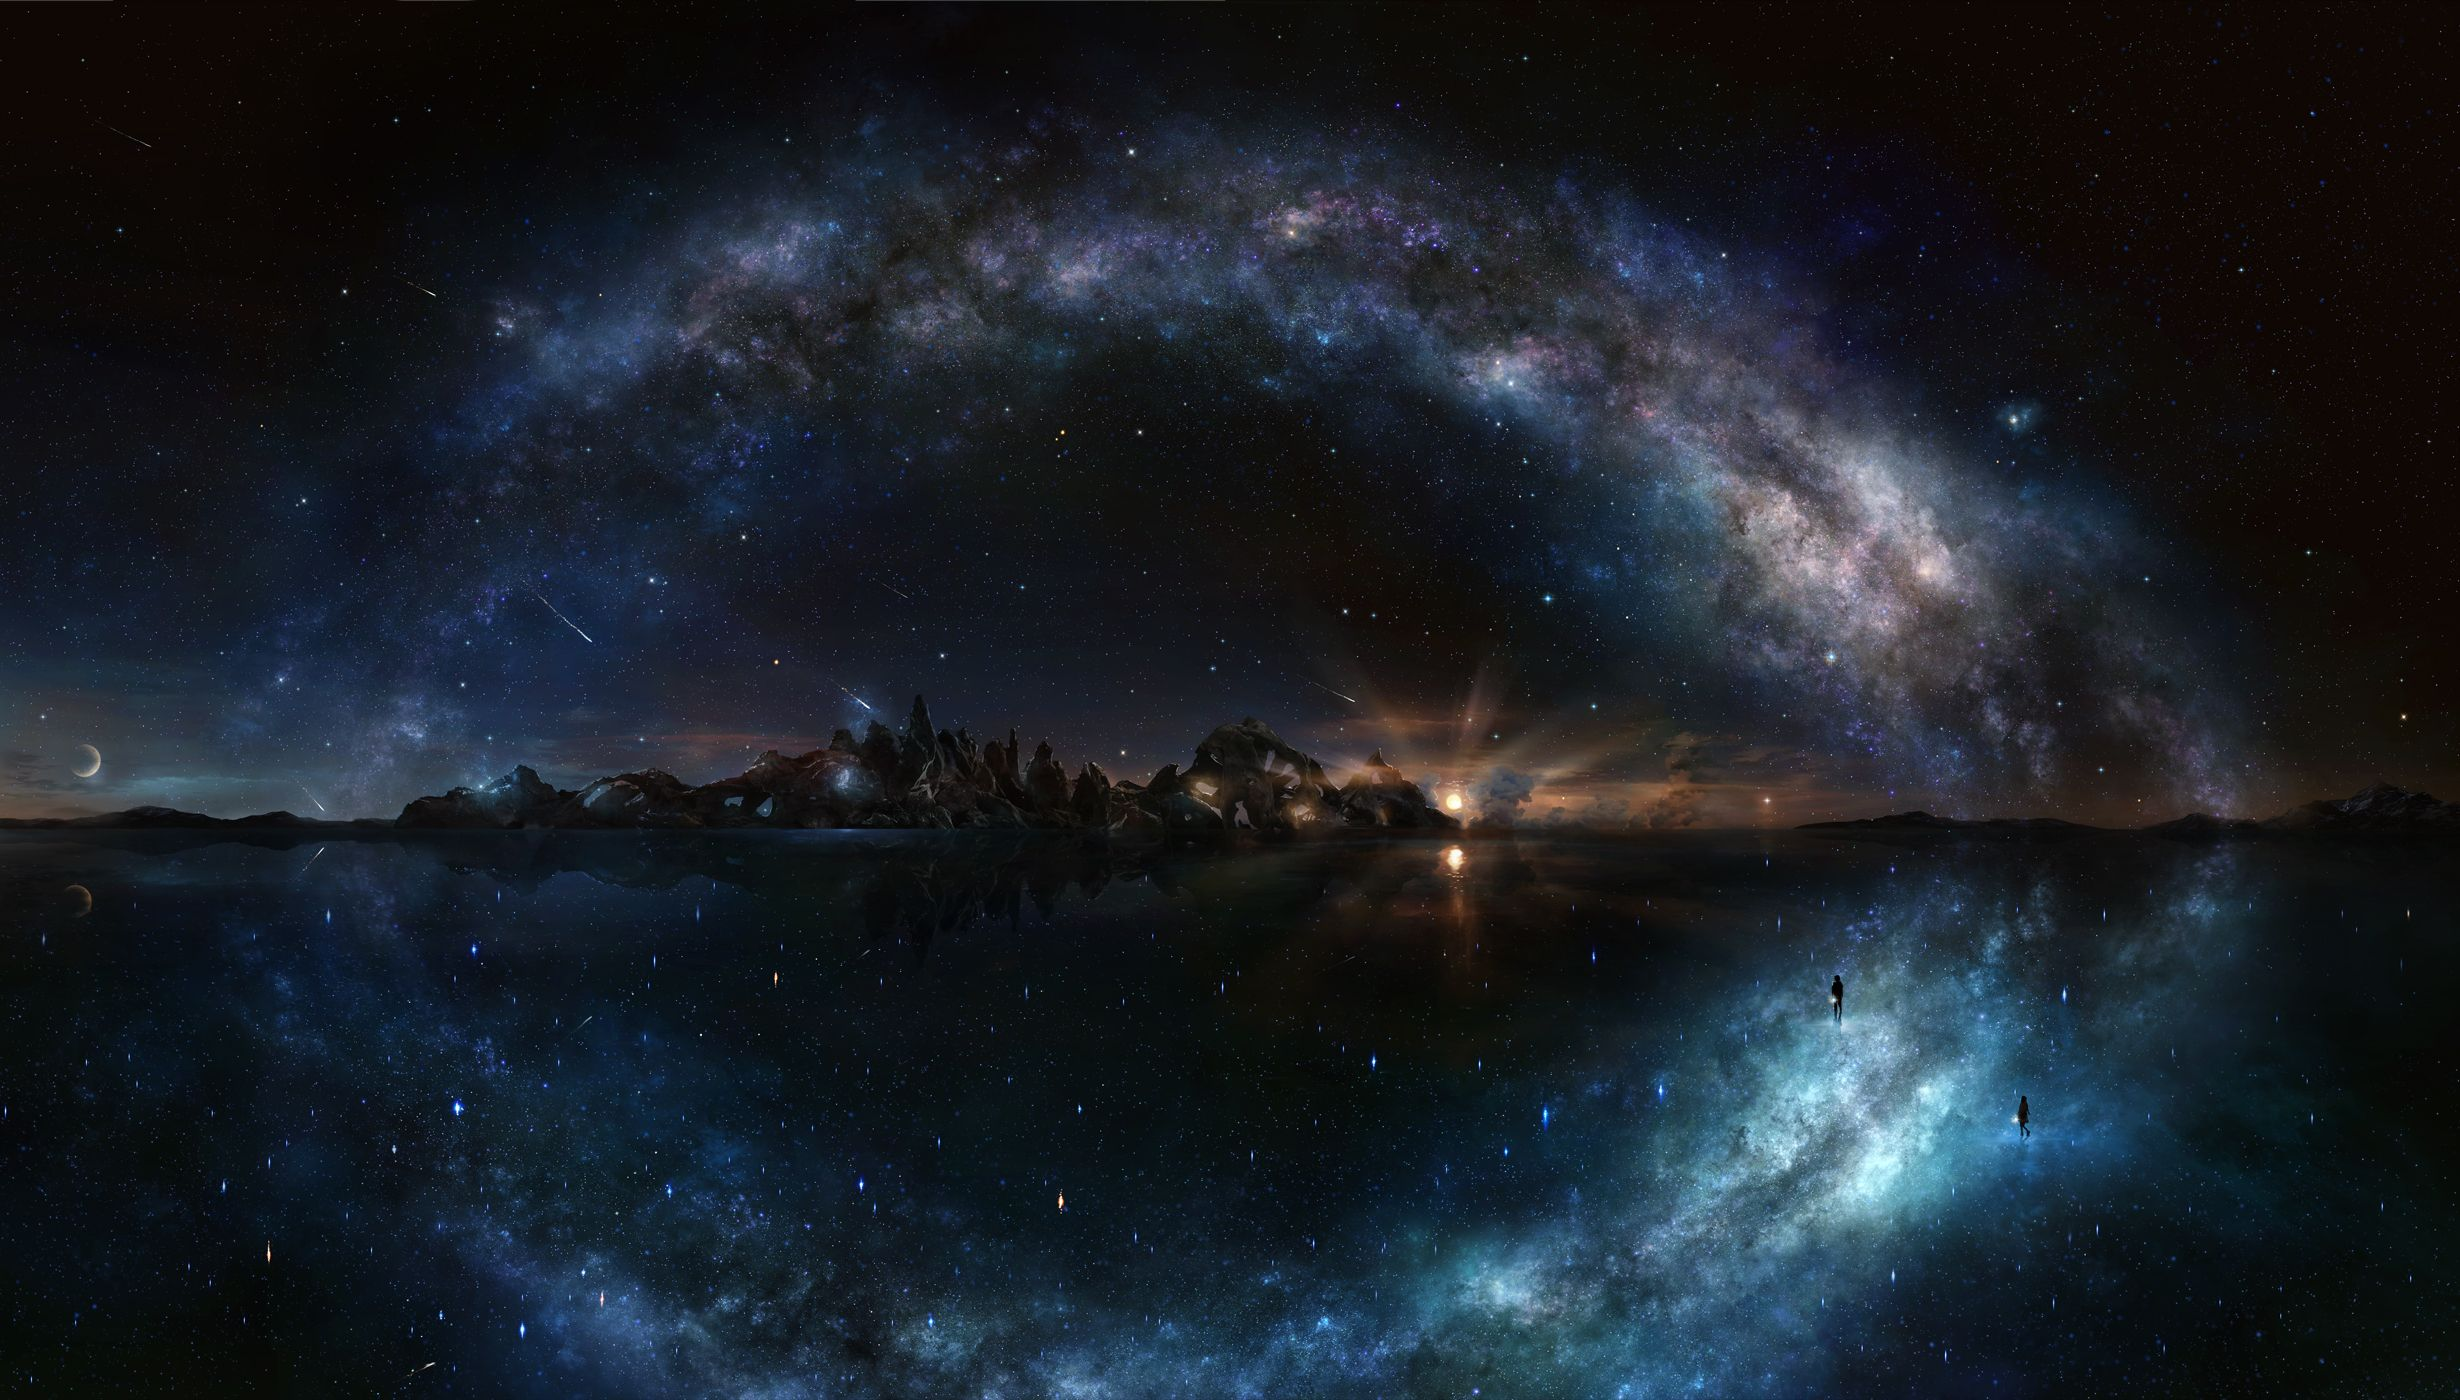 Milky Way Space Art Digital Art Fantasy Art Wallpaper No Night Sky Wallpaper Starry Night Wallpaper Background Images